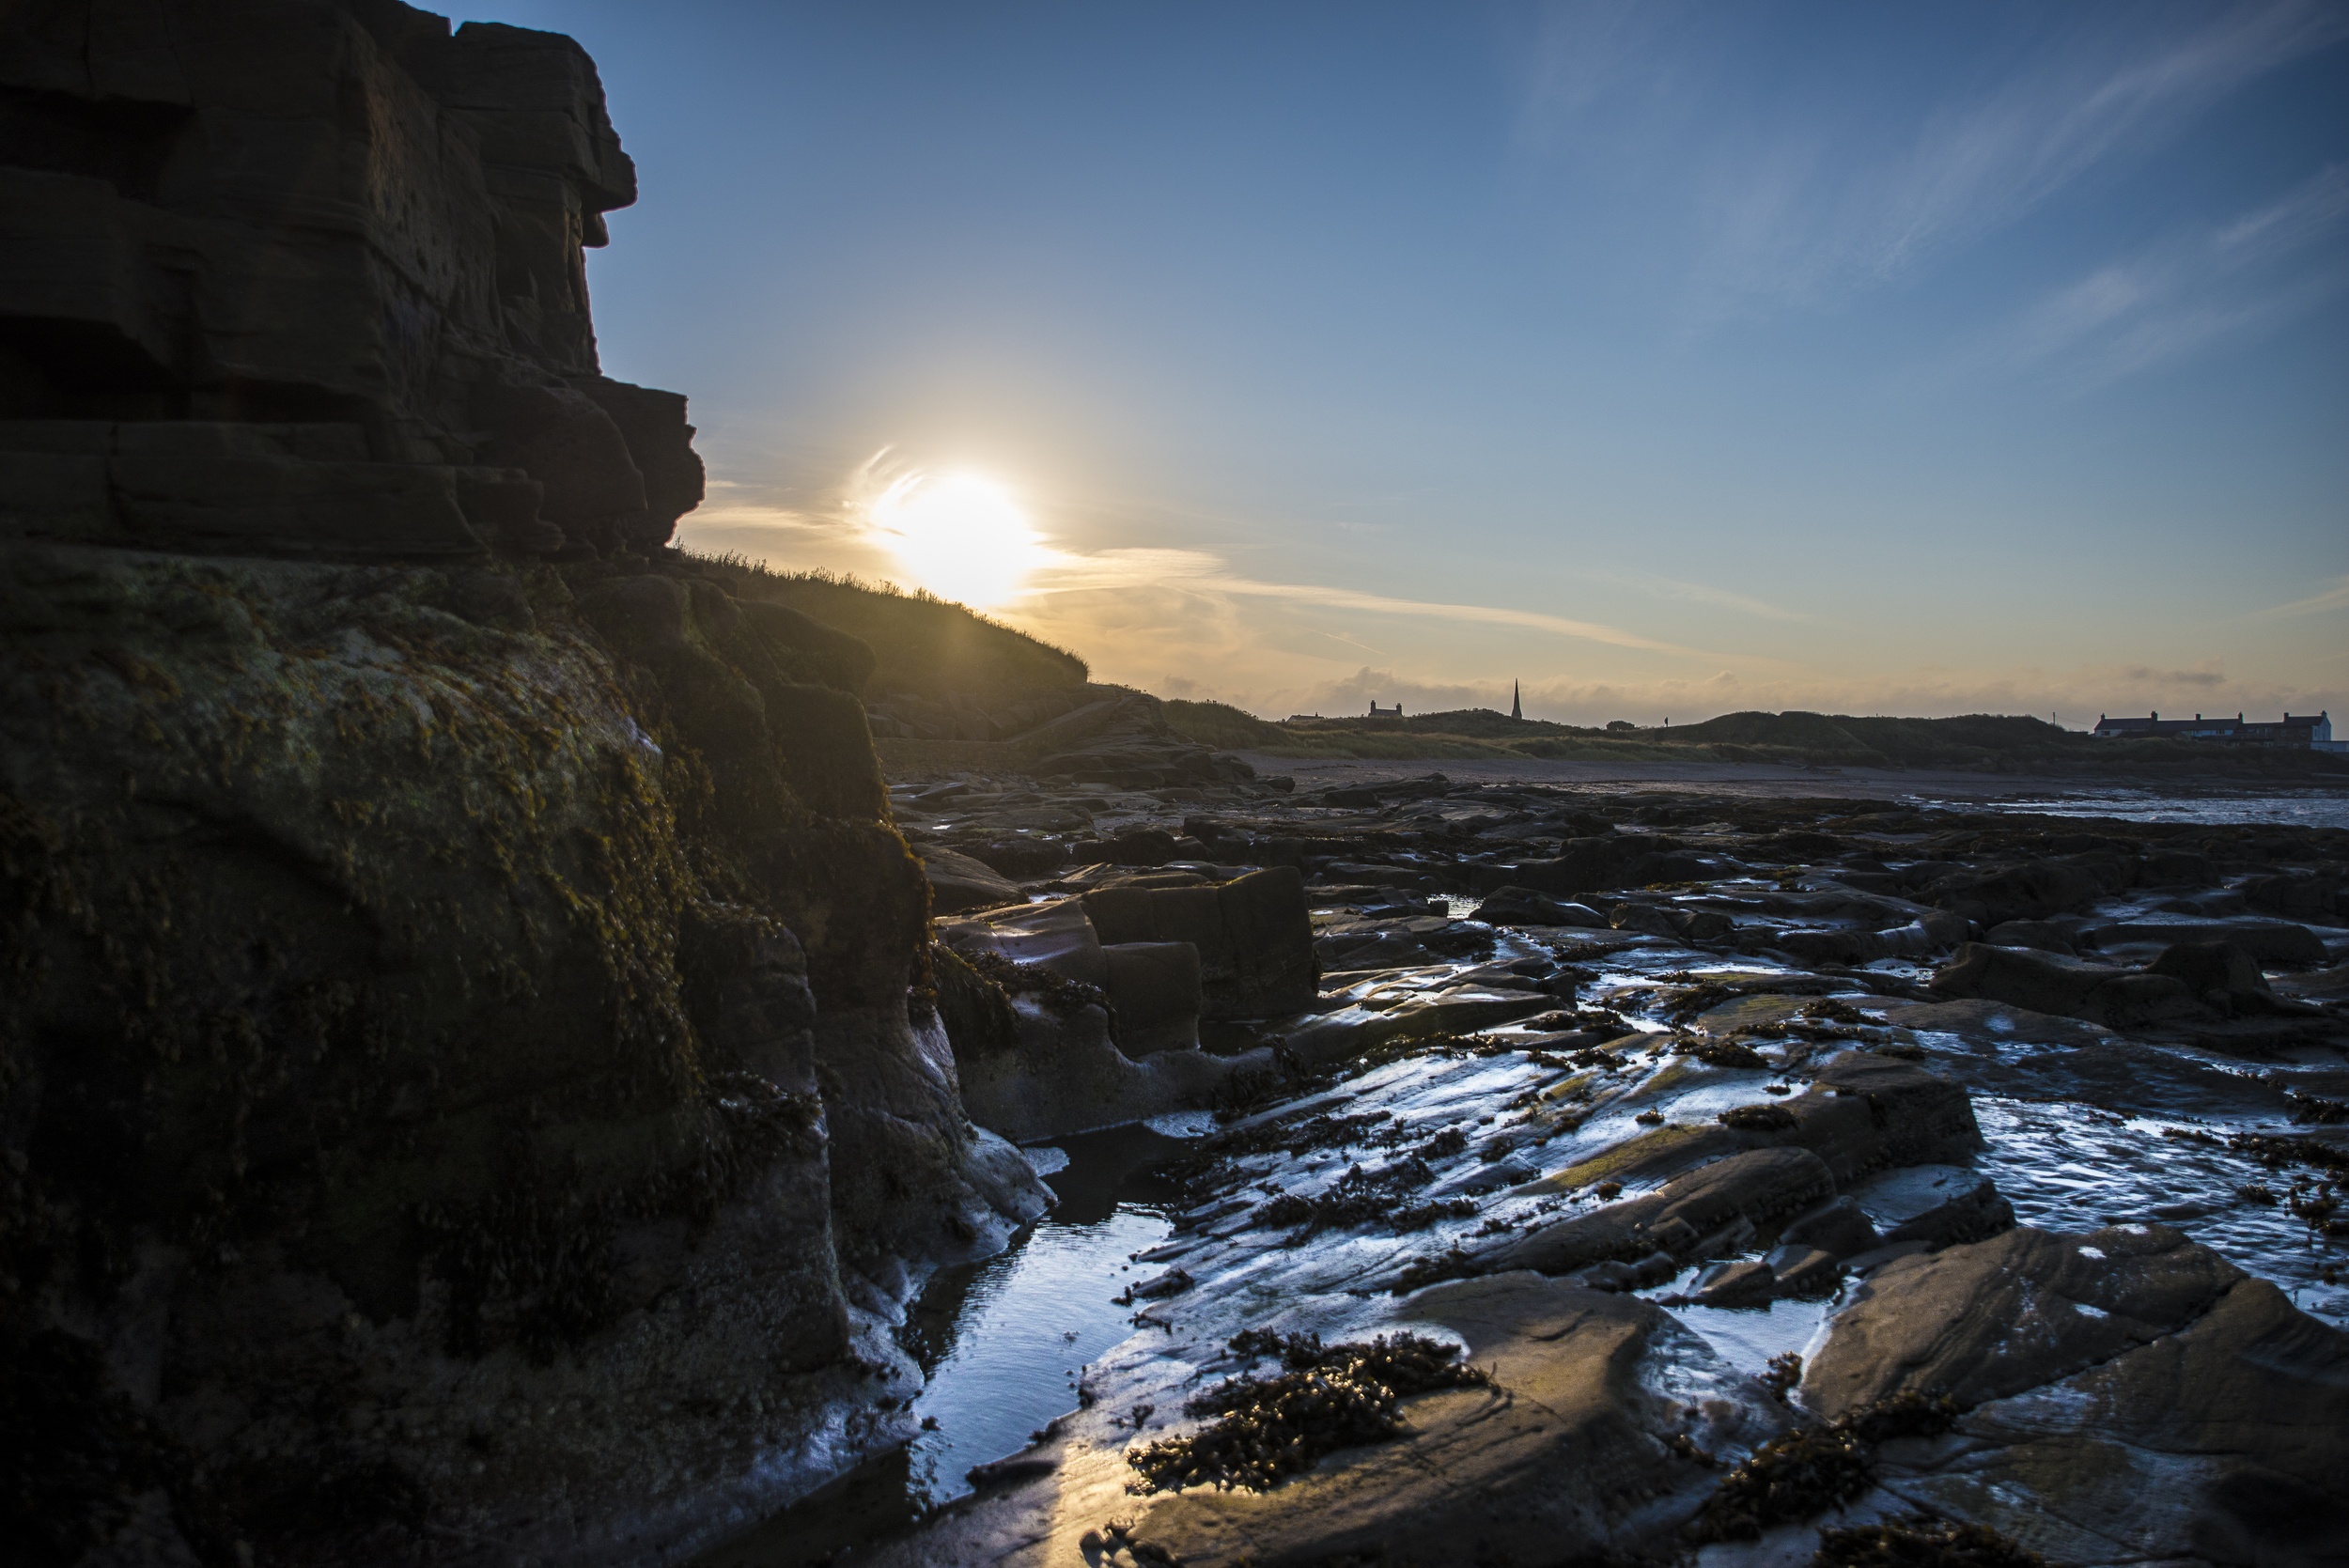 Sunset on the beach in Amble, Northumberland.